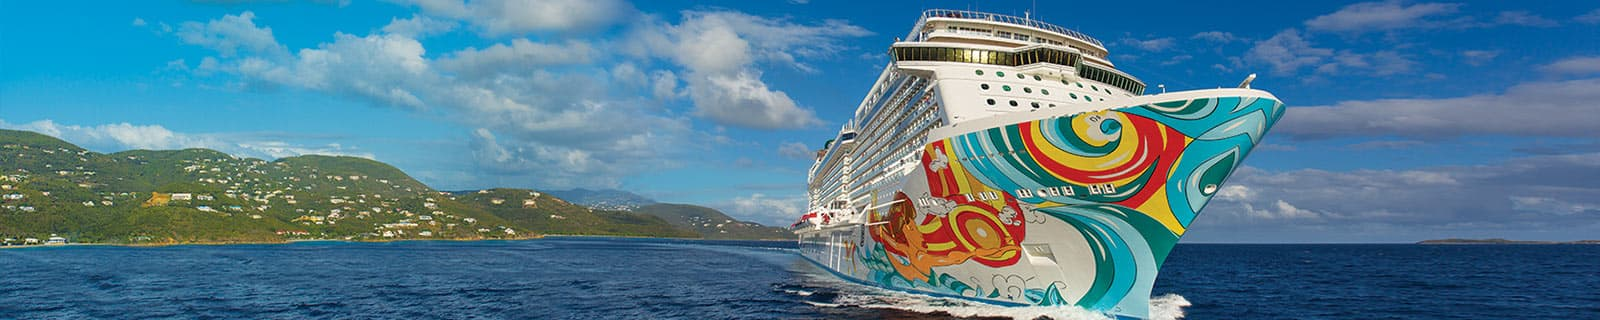 Norwegian Getaway Cruise Ship | Norwegian Getaway Deck Plans